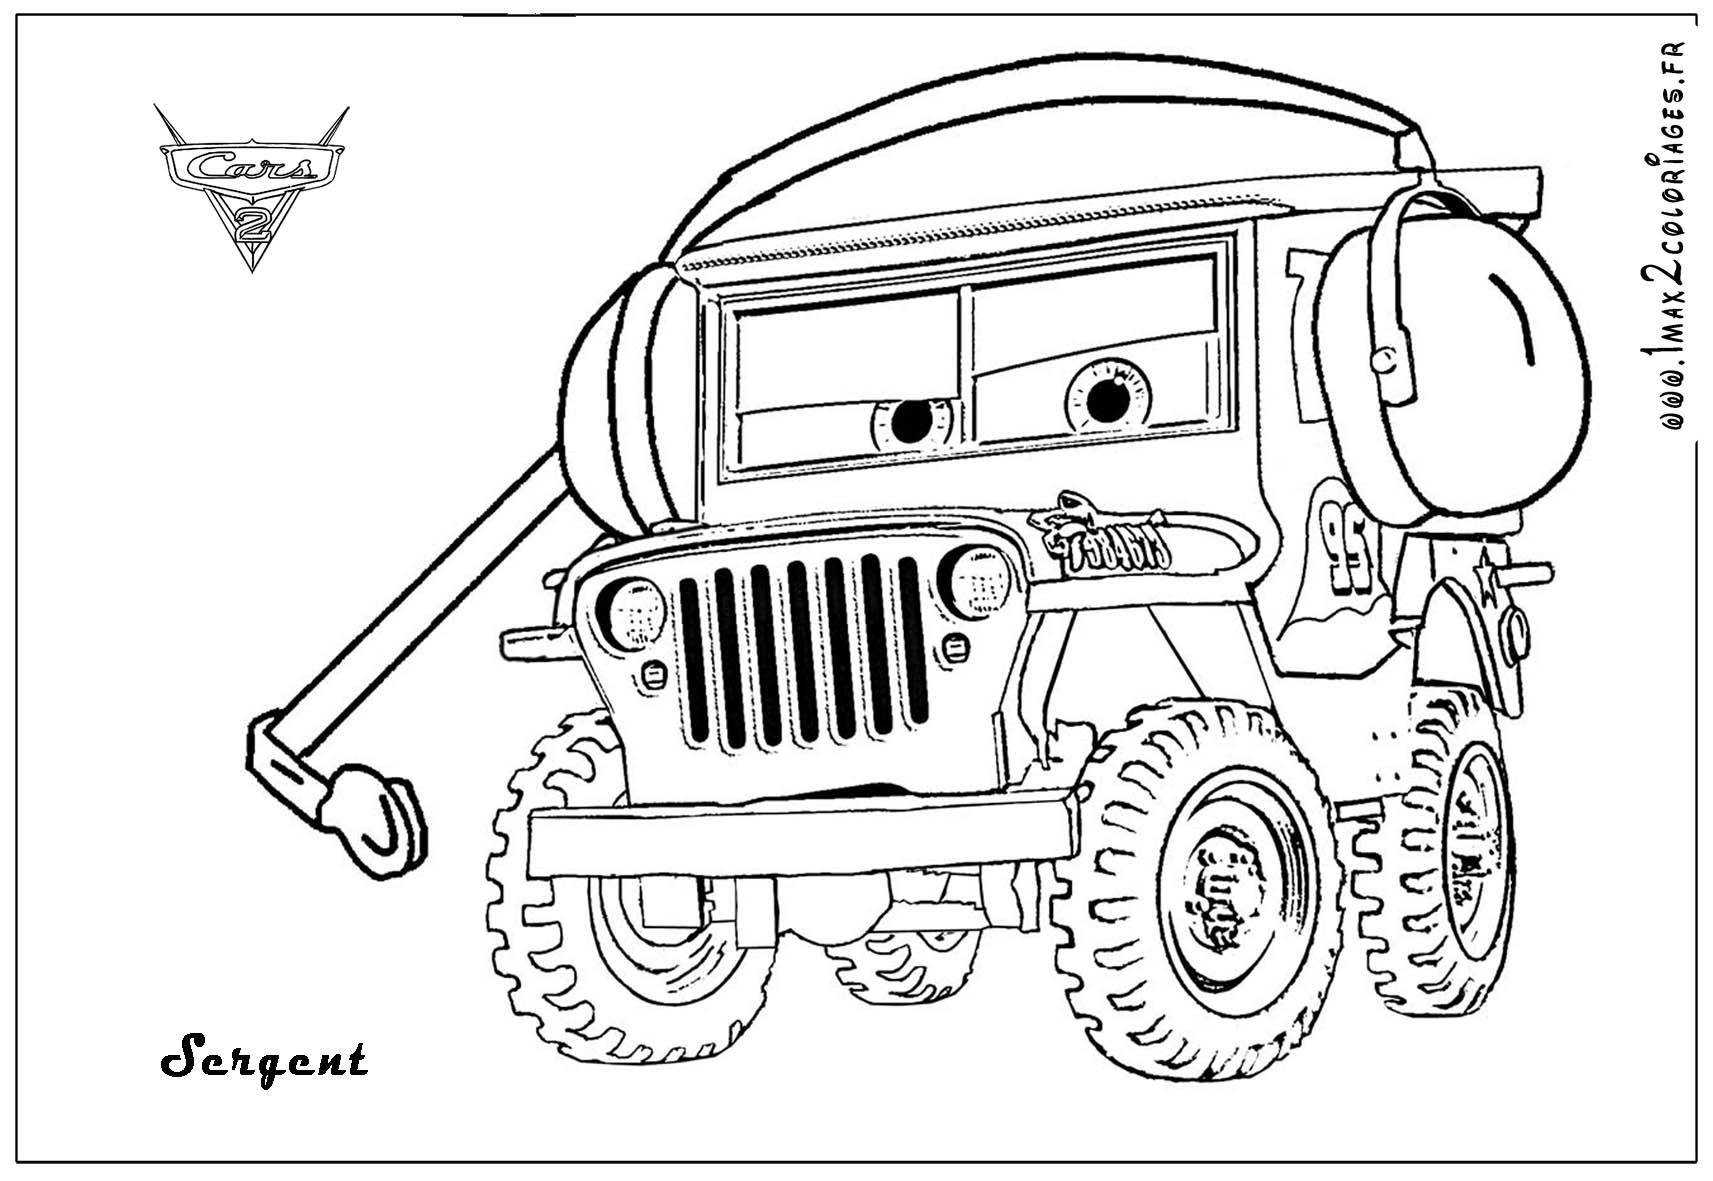 Sarge The World War Ii Jeep From The Movie Cars With His